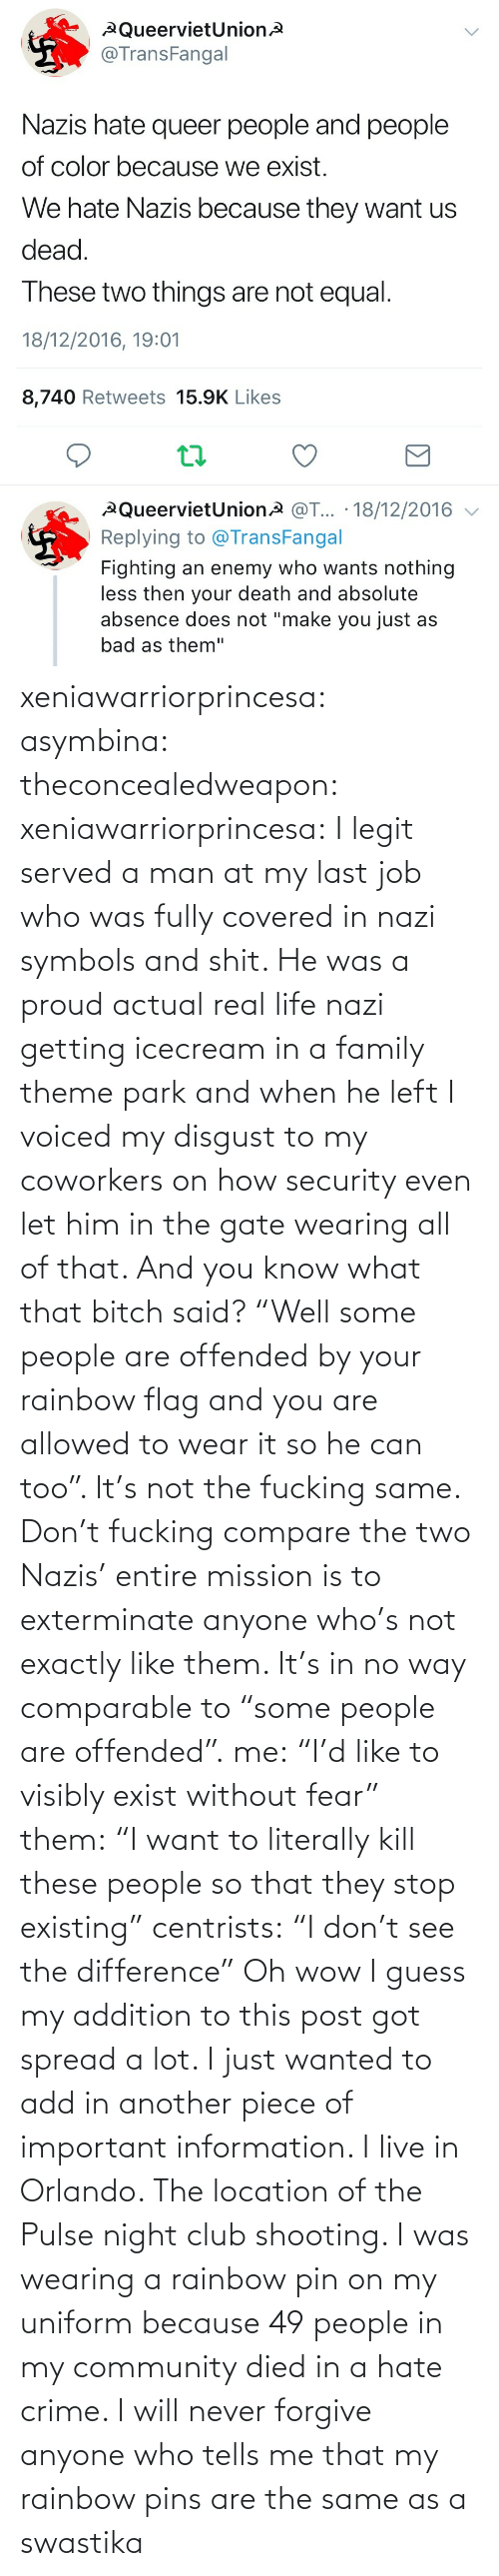 """park: xeniawarriorprincesa:  asymbina:  theconcealedweapon:  xeniawarriorprincesa:  I legit served a man at my last job who was fully covered in nazi symbols and shit. He was a proud actual real life nazi getting icecream in a family theme park and when he left I voiced my disgust to my coworkers on how security even let him in the gate wearing all of that. And you know what that bitch said? """"Well some people are offended by your rainbow flag and you are allowed to wear it so he can too"""". It's not the fucking same. Don't fucking compare the two  Nazis' entire mission is to exterminate anyone who's not exactly like them. It's in no way comparable to """"some people are offended"""".  me:""""I'd like to visibly exist without fear"""" them:""""I want to literally kill these people so that they stop existing"""" centrists:""""I don't see the difference""""   Oh wow I guess my addition to this post got spread a lot. I just wanted to add in another piece of important information. I live in Orlando. The location of the Pulse night club shooting. I was wearing a rainbow pin on my uniform because 49 people in my community died in a hate crime. I will never forgive anyone who tells me that my rainbow pins are the same as a swastika"""